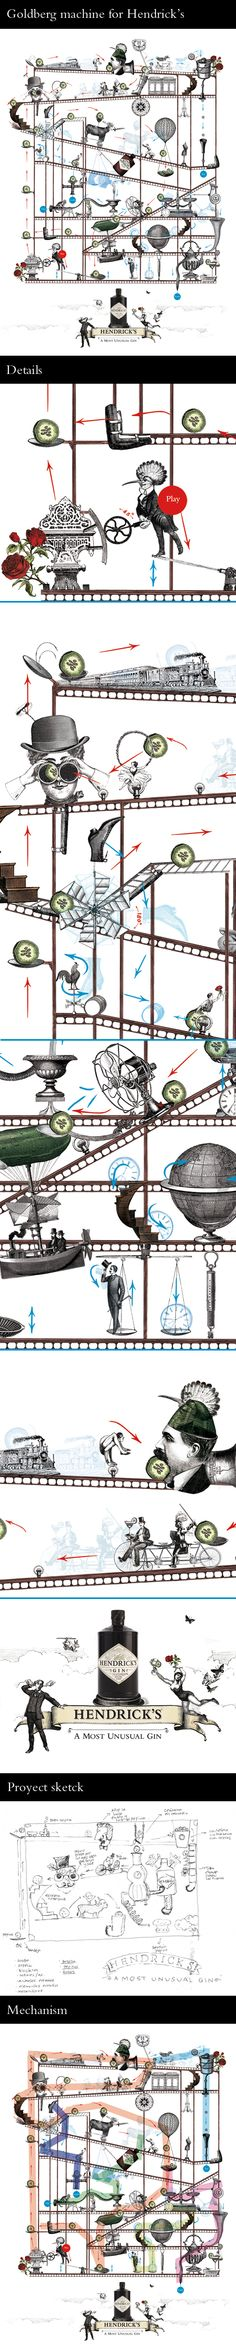 Goldberg machine illustration for Hendrick's on Behance